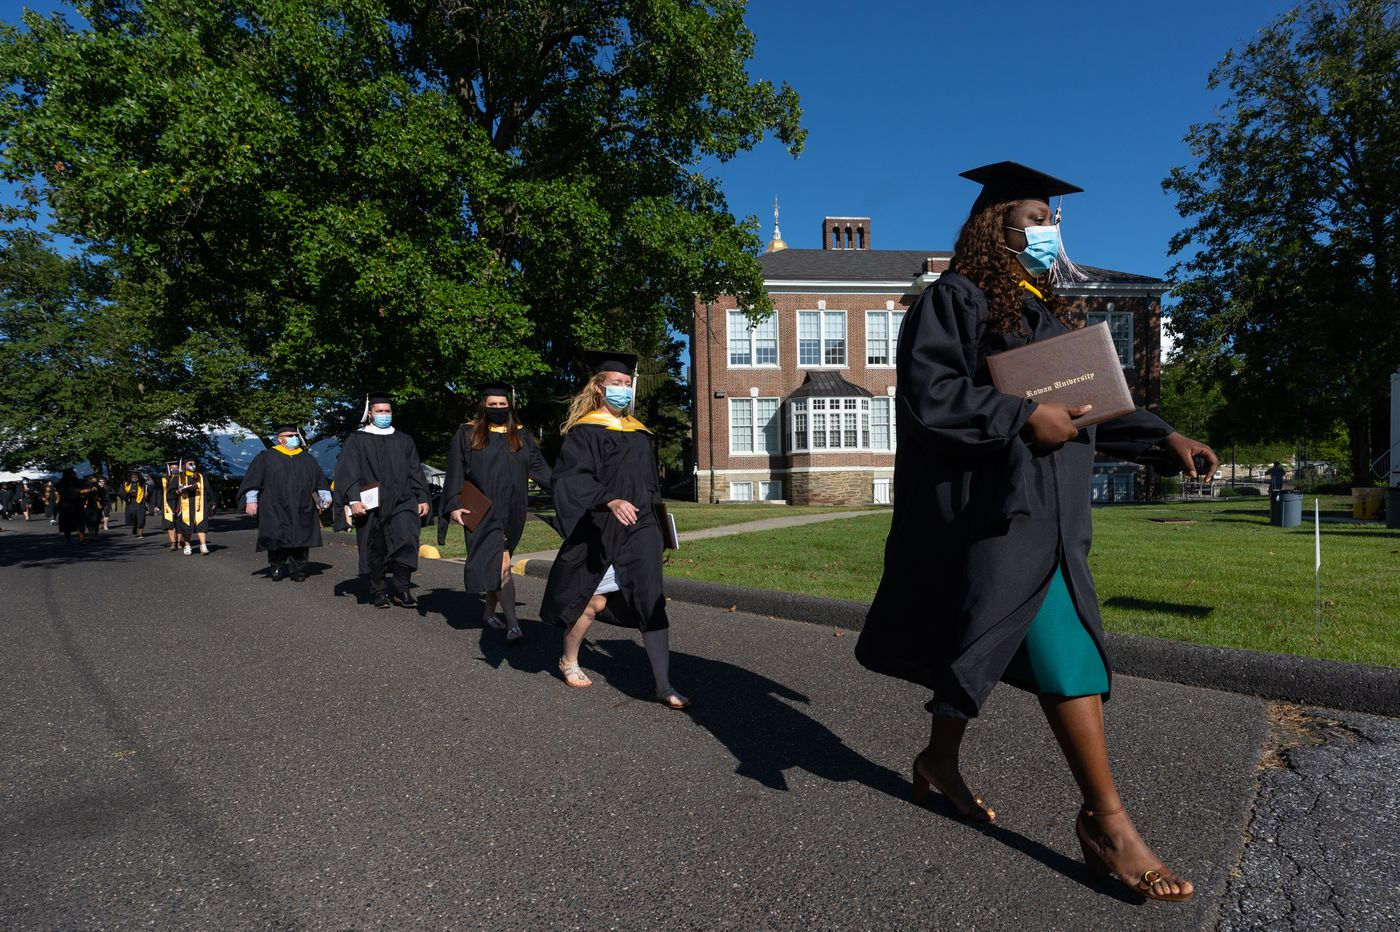 Rowan University is among first in the region to hold in-person commencement